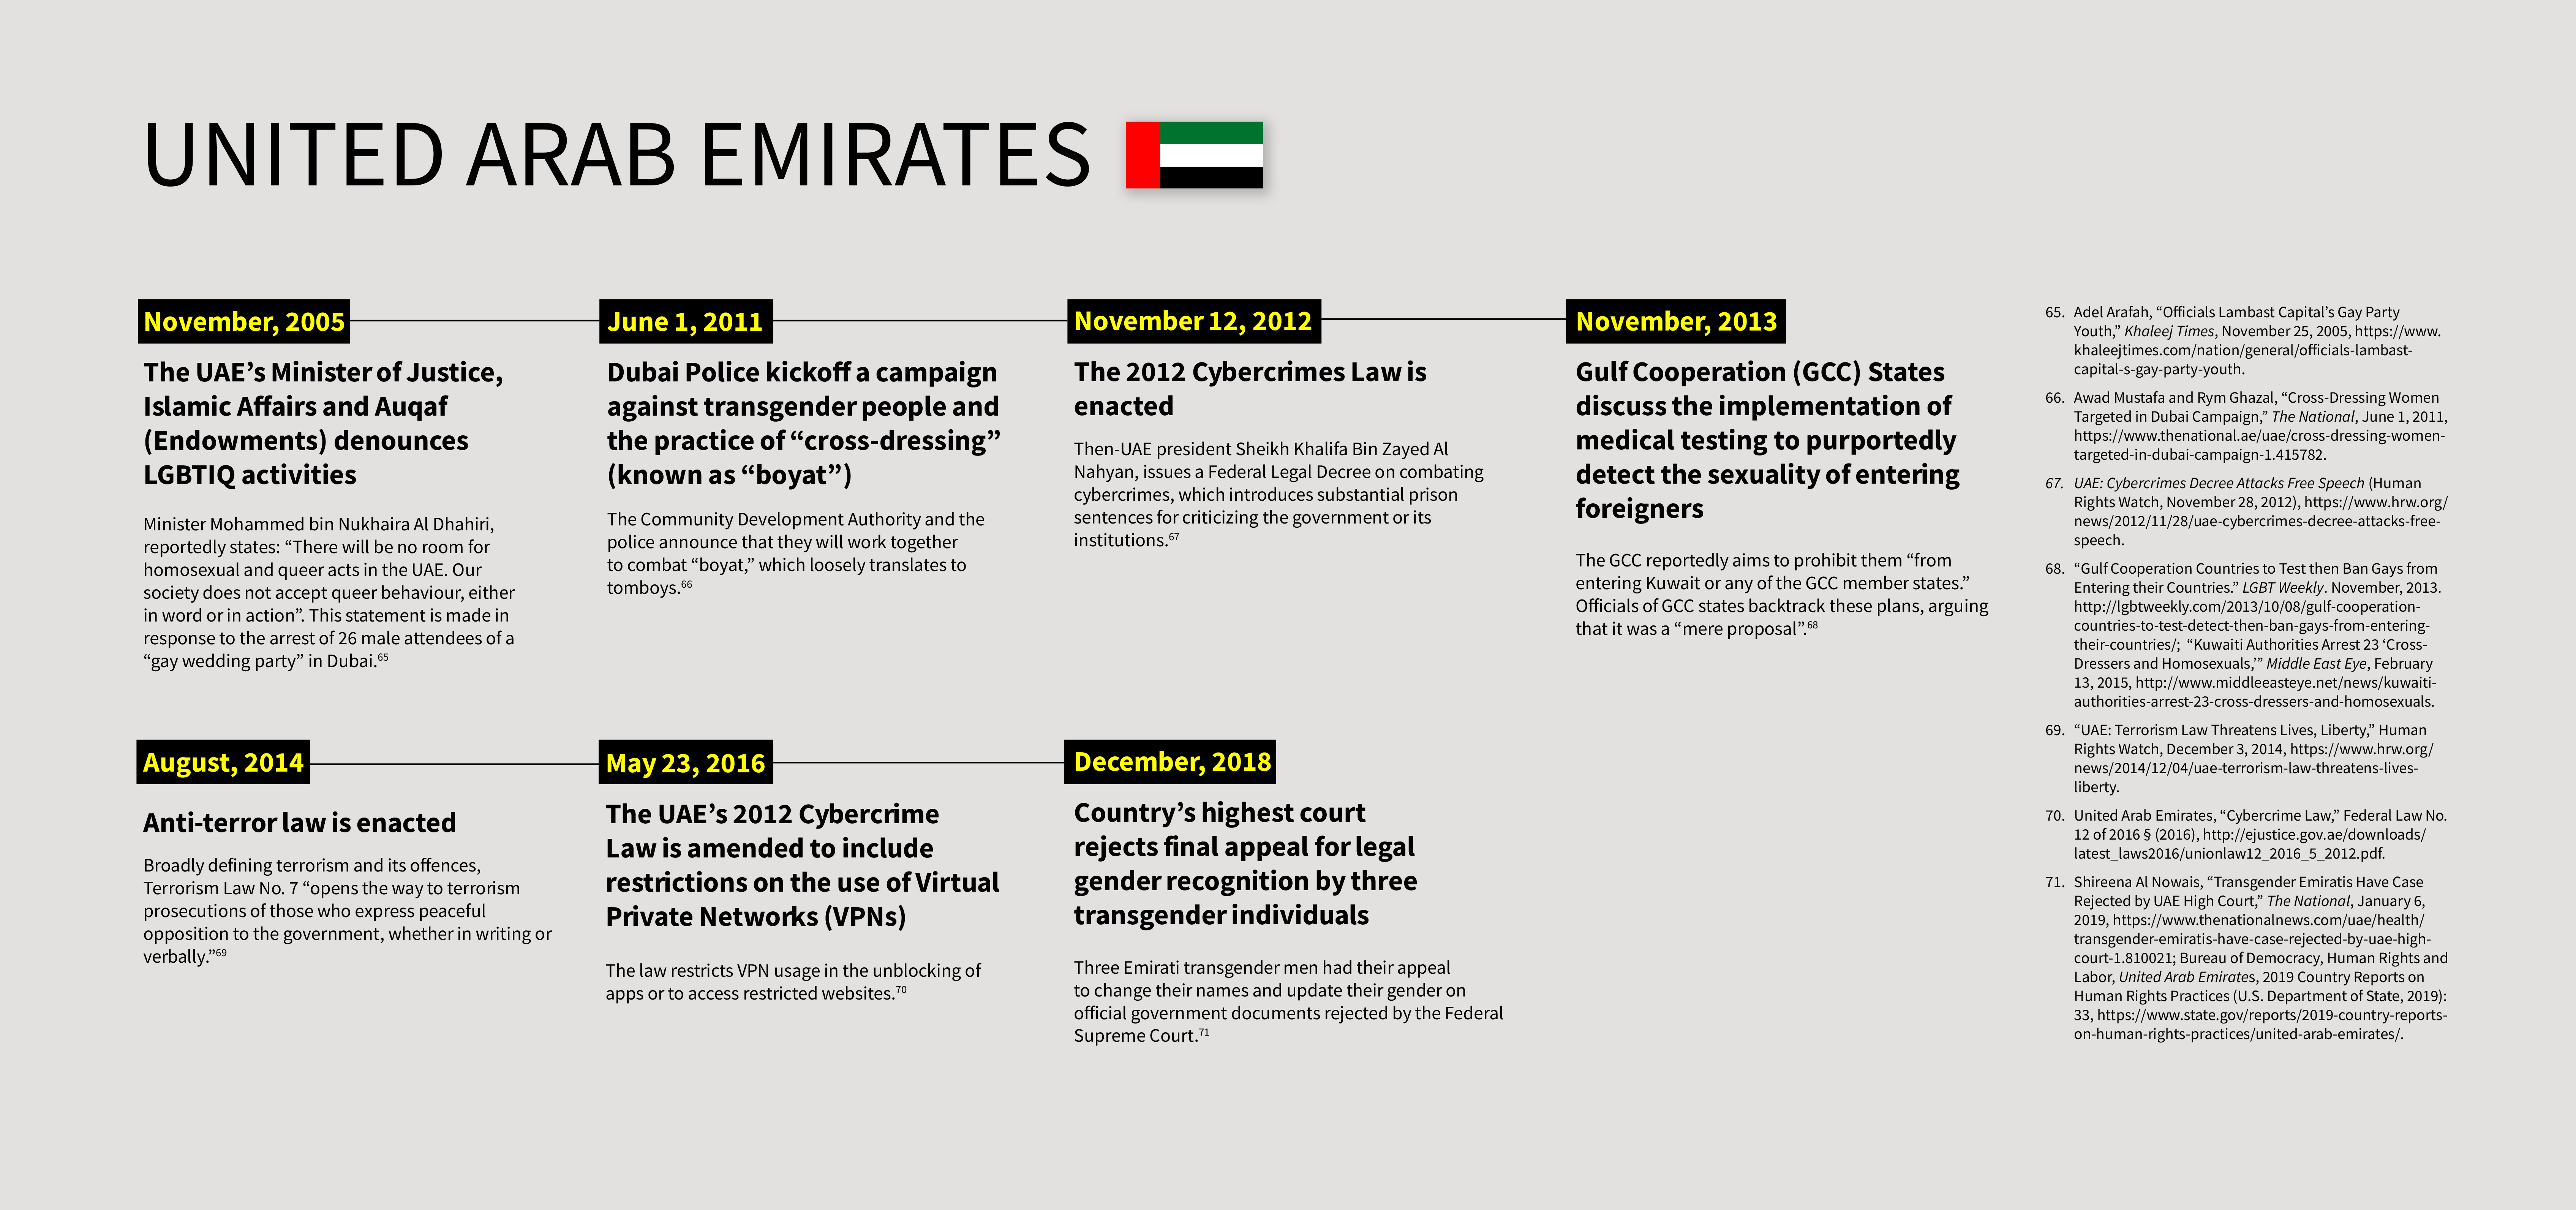 Timeline of selected events in United Arab Emirates